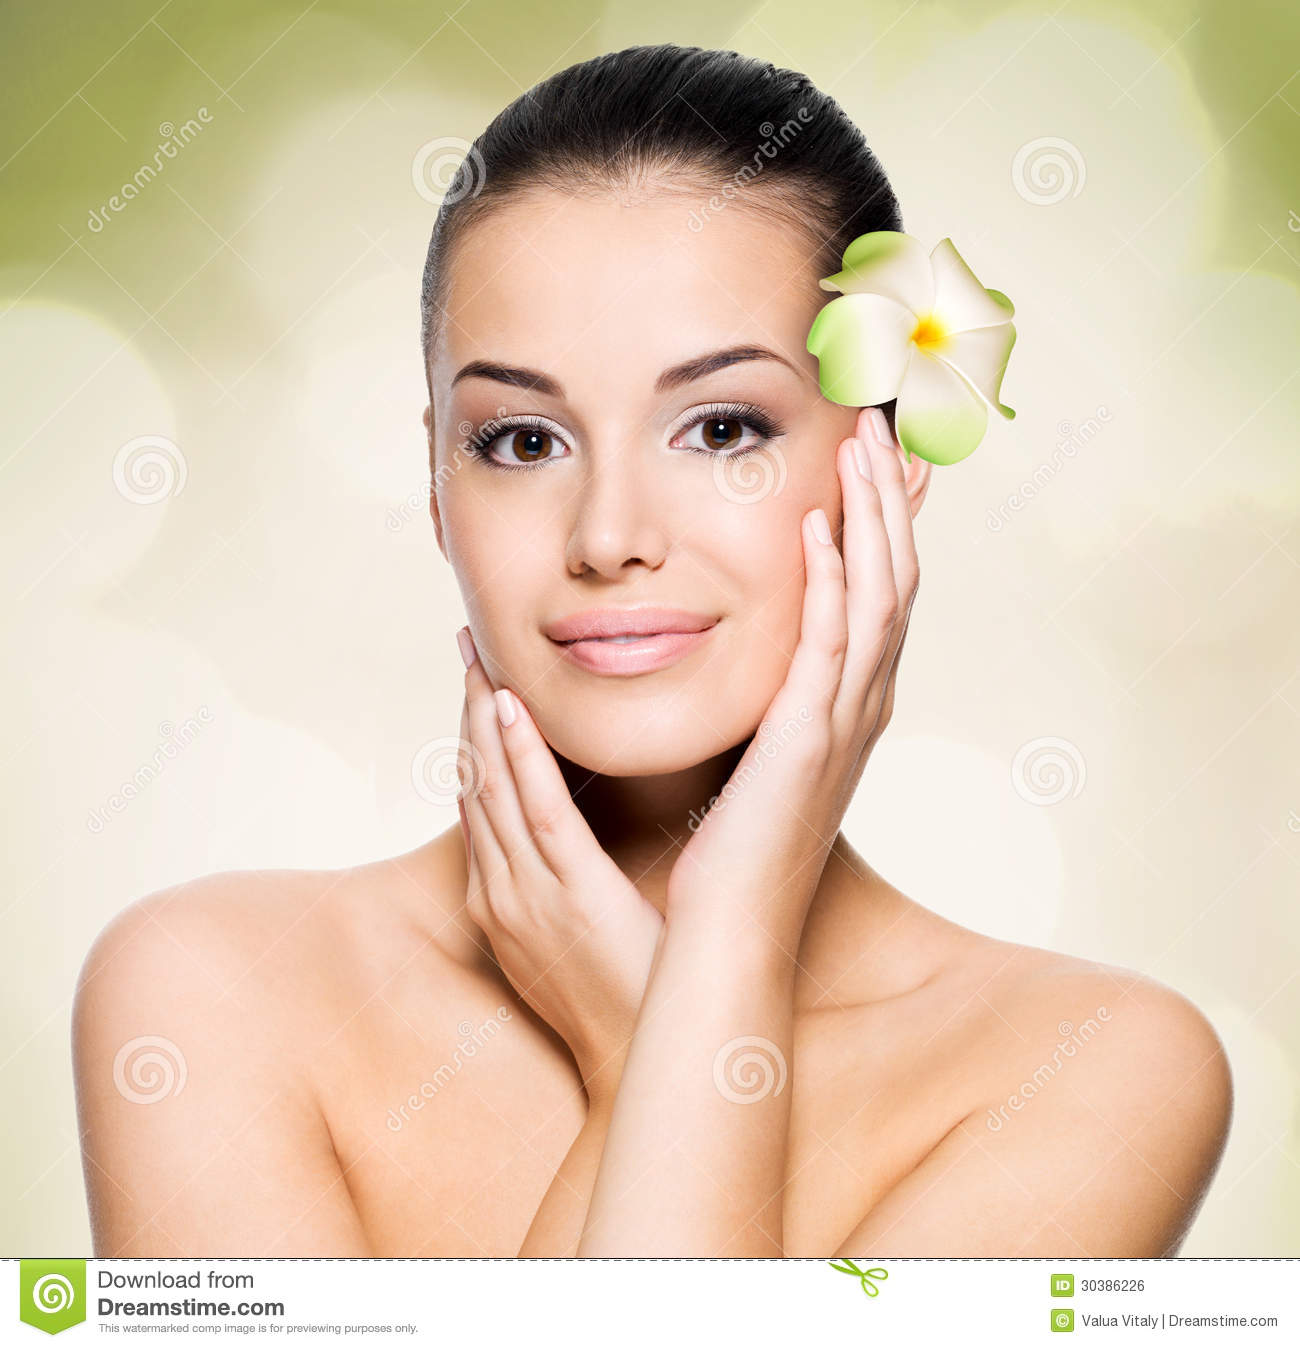 Good Skin Care: Woman With Healthy Skin Face Royalty Free Stock Image